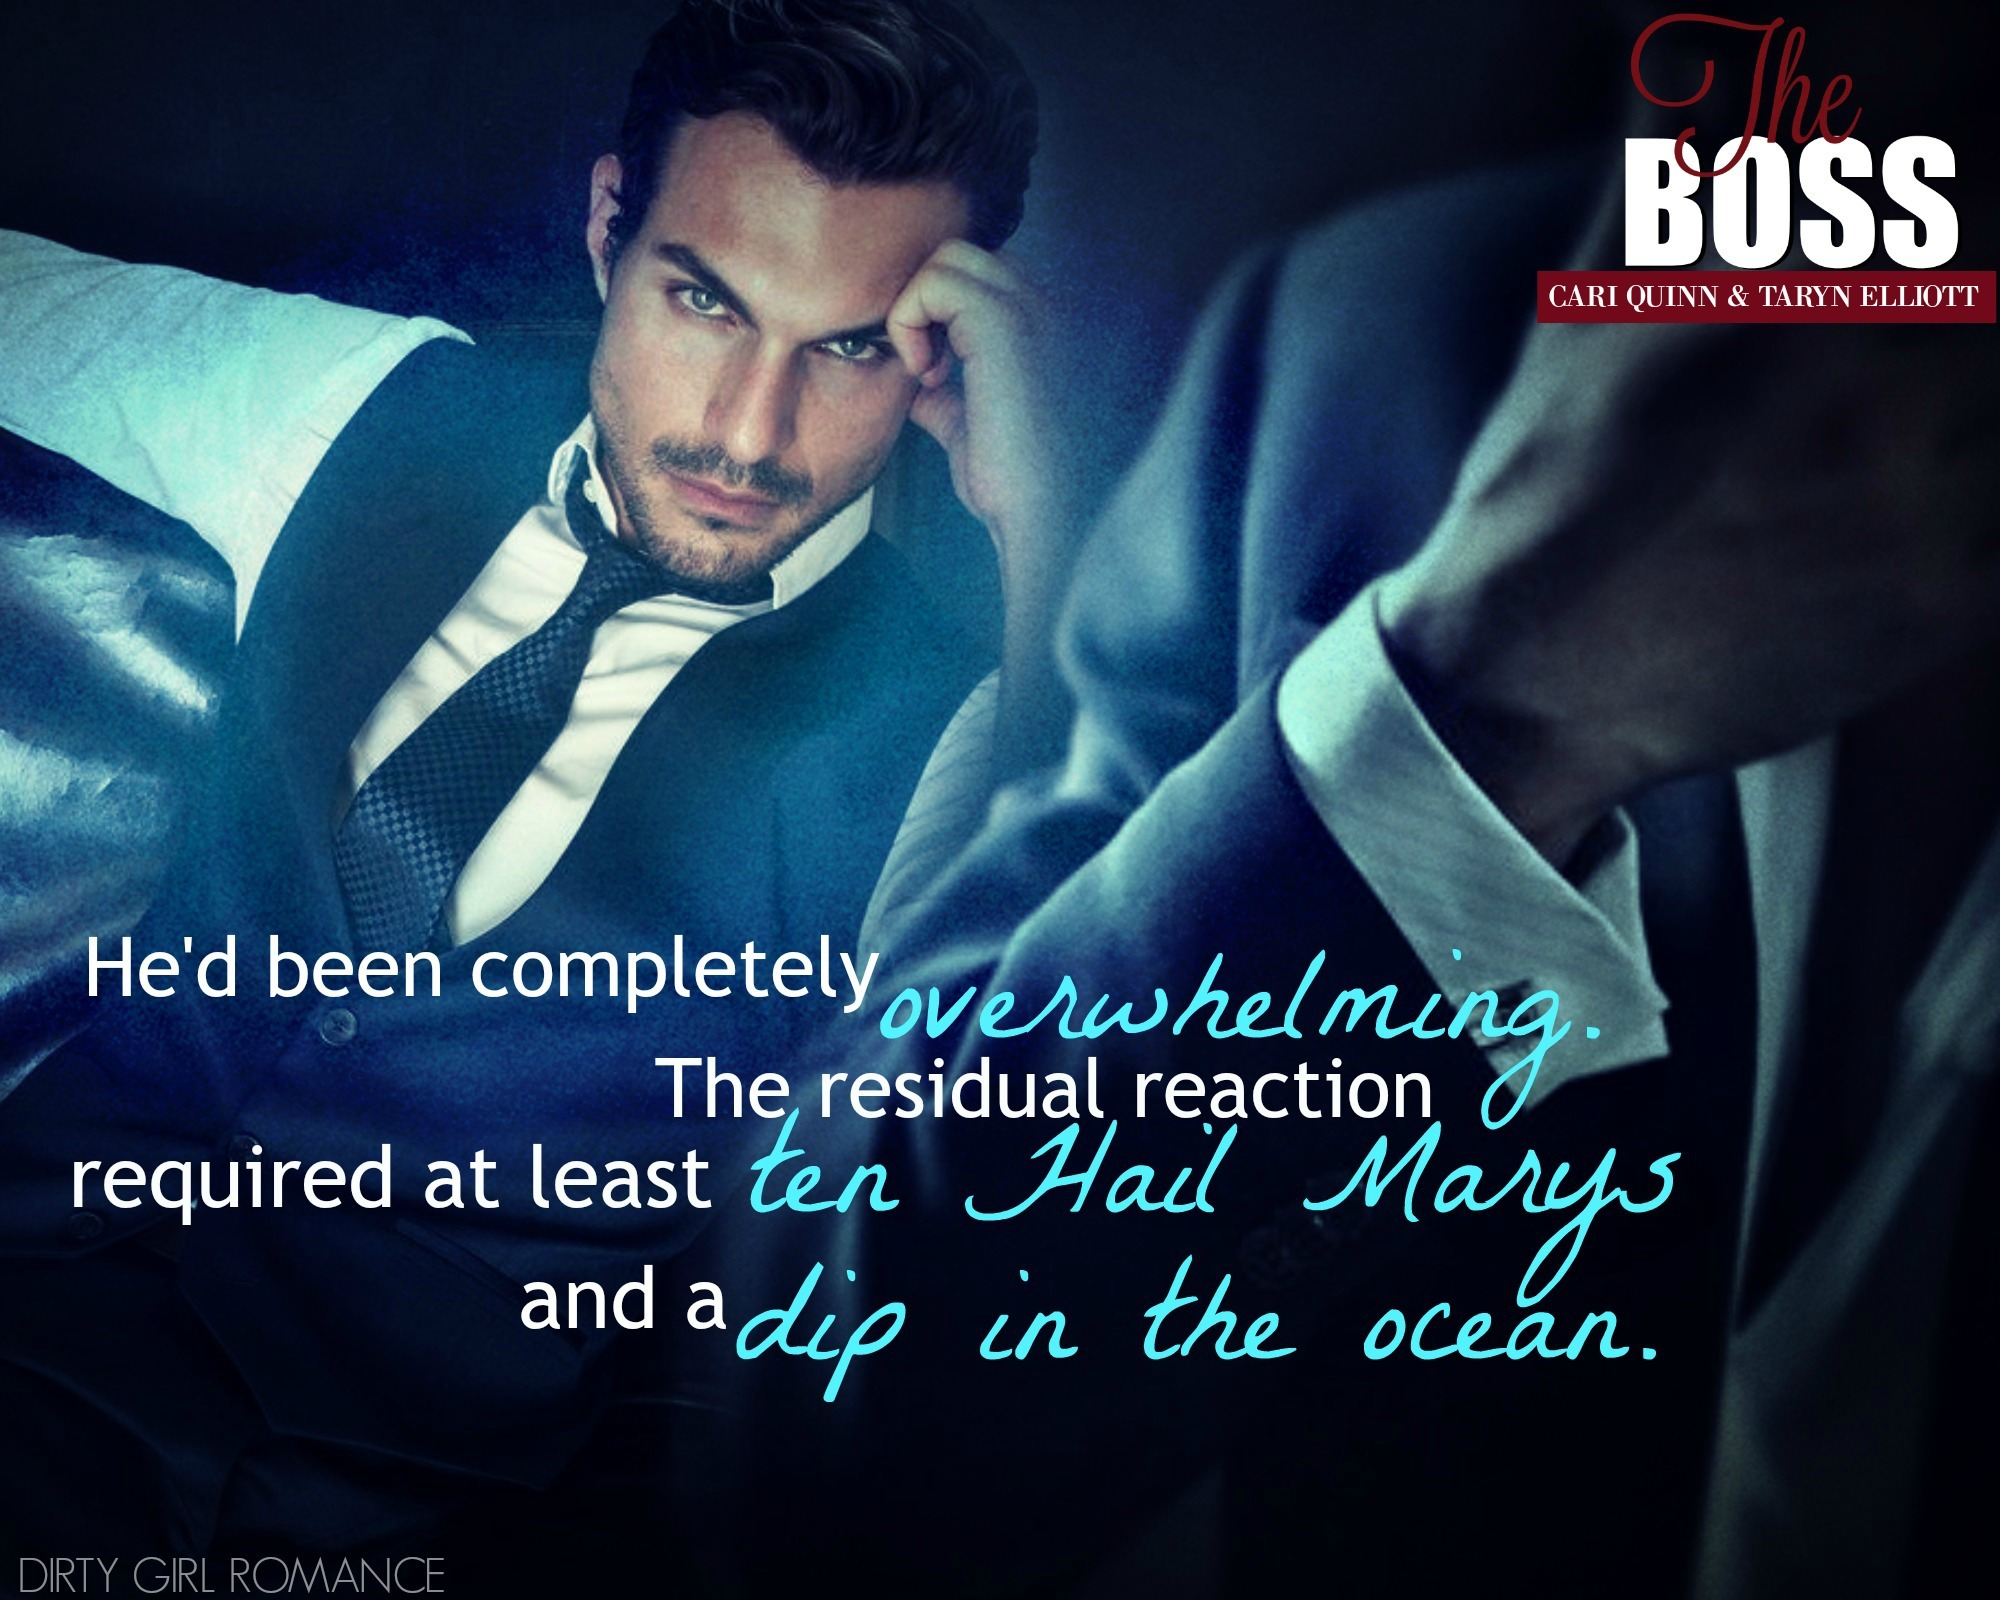 The Boss: Book One (The Boss, #1) by Cari Quinn